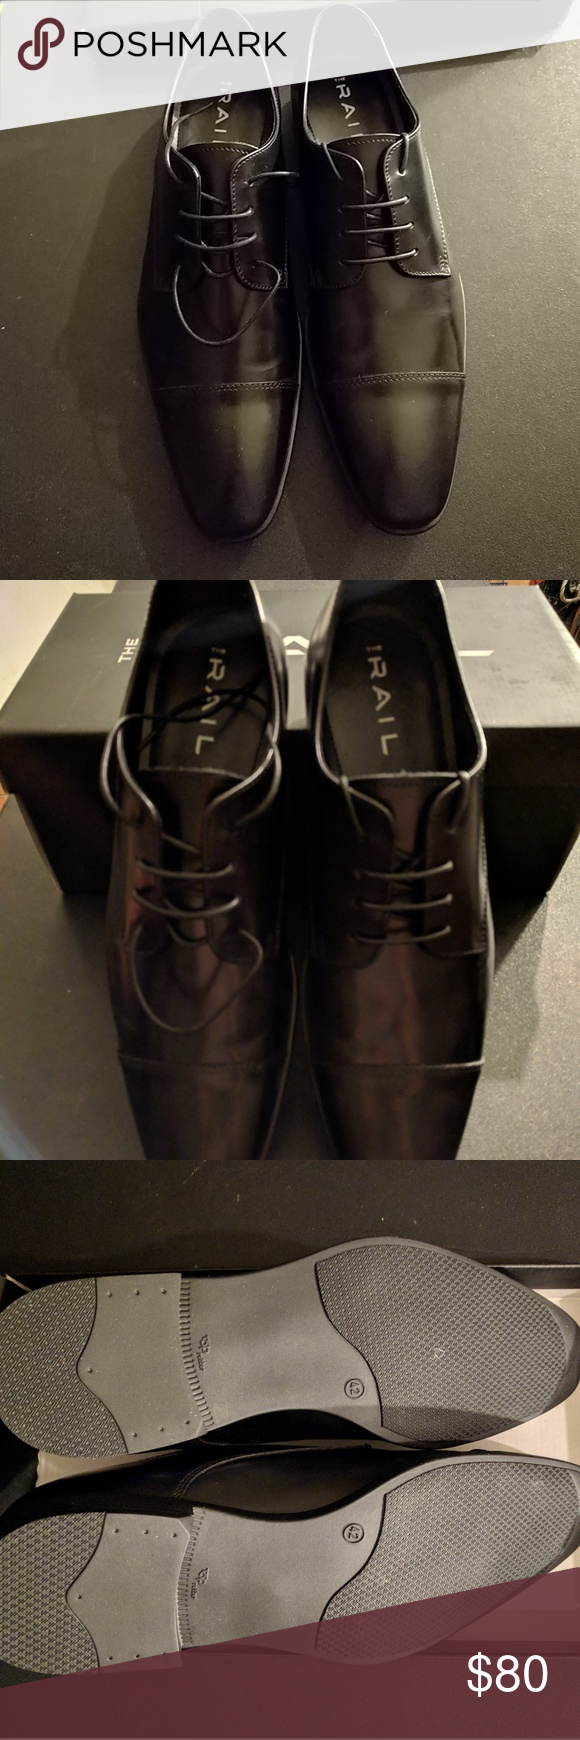 40c0c0525022 The Rail Stark Cap Toe Derby Mens dress shoes Open box never  used...practically brand new. Size chart shows 8-8.5 The Rail Shoes Oxfords  & Derbys